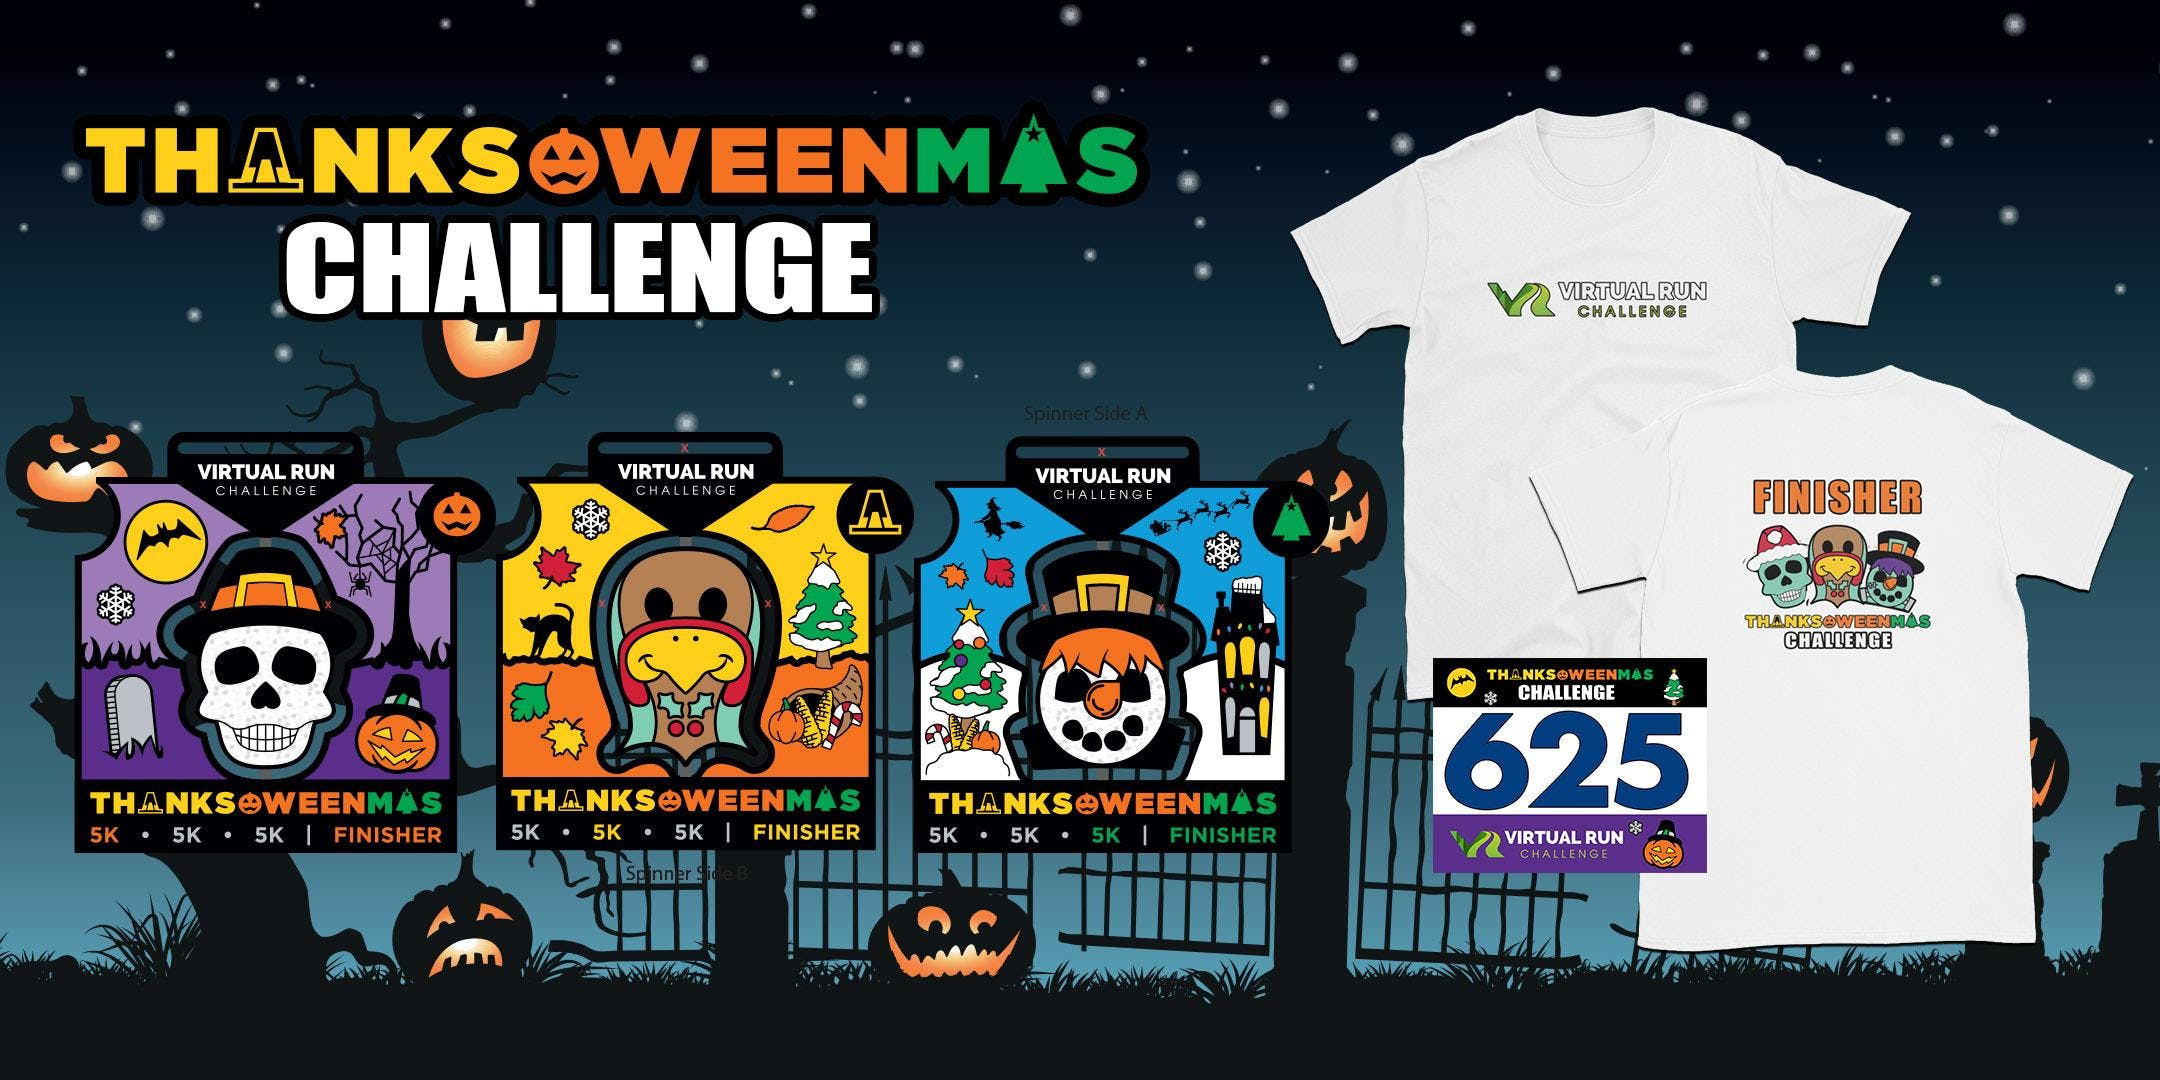 2019 - Thanks-Oween-Mas Virtual 5k Challenge - Scottsdale